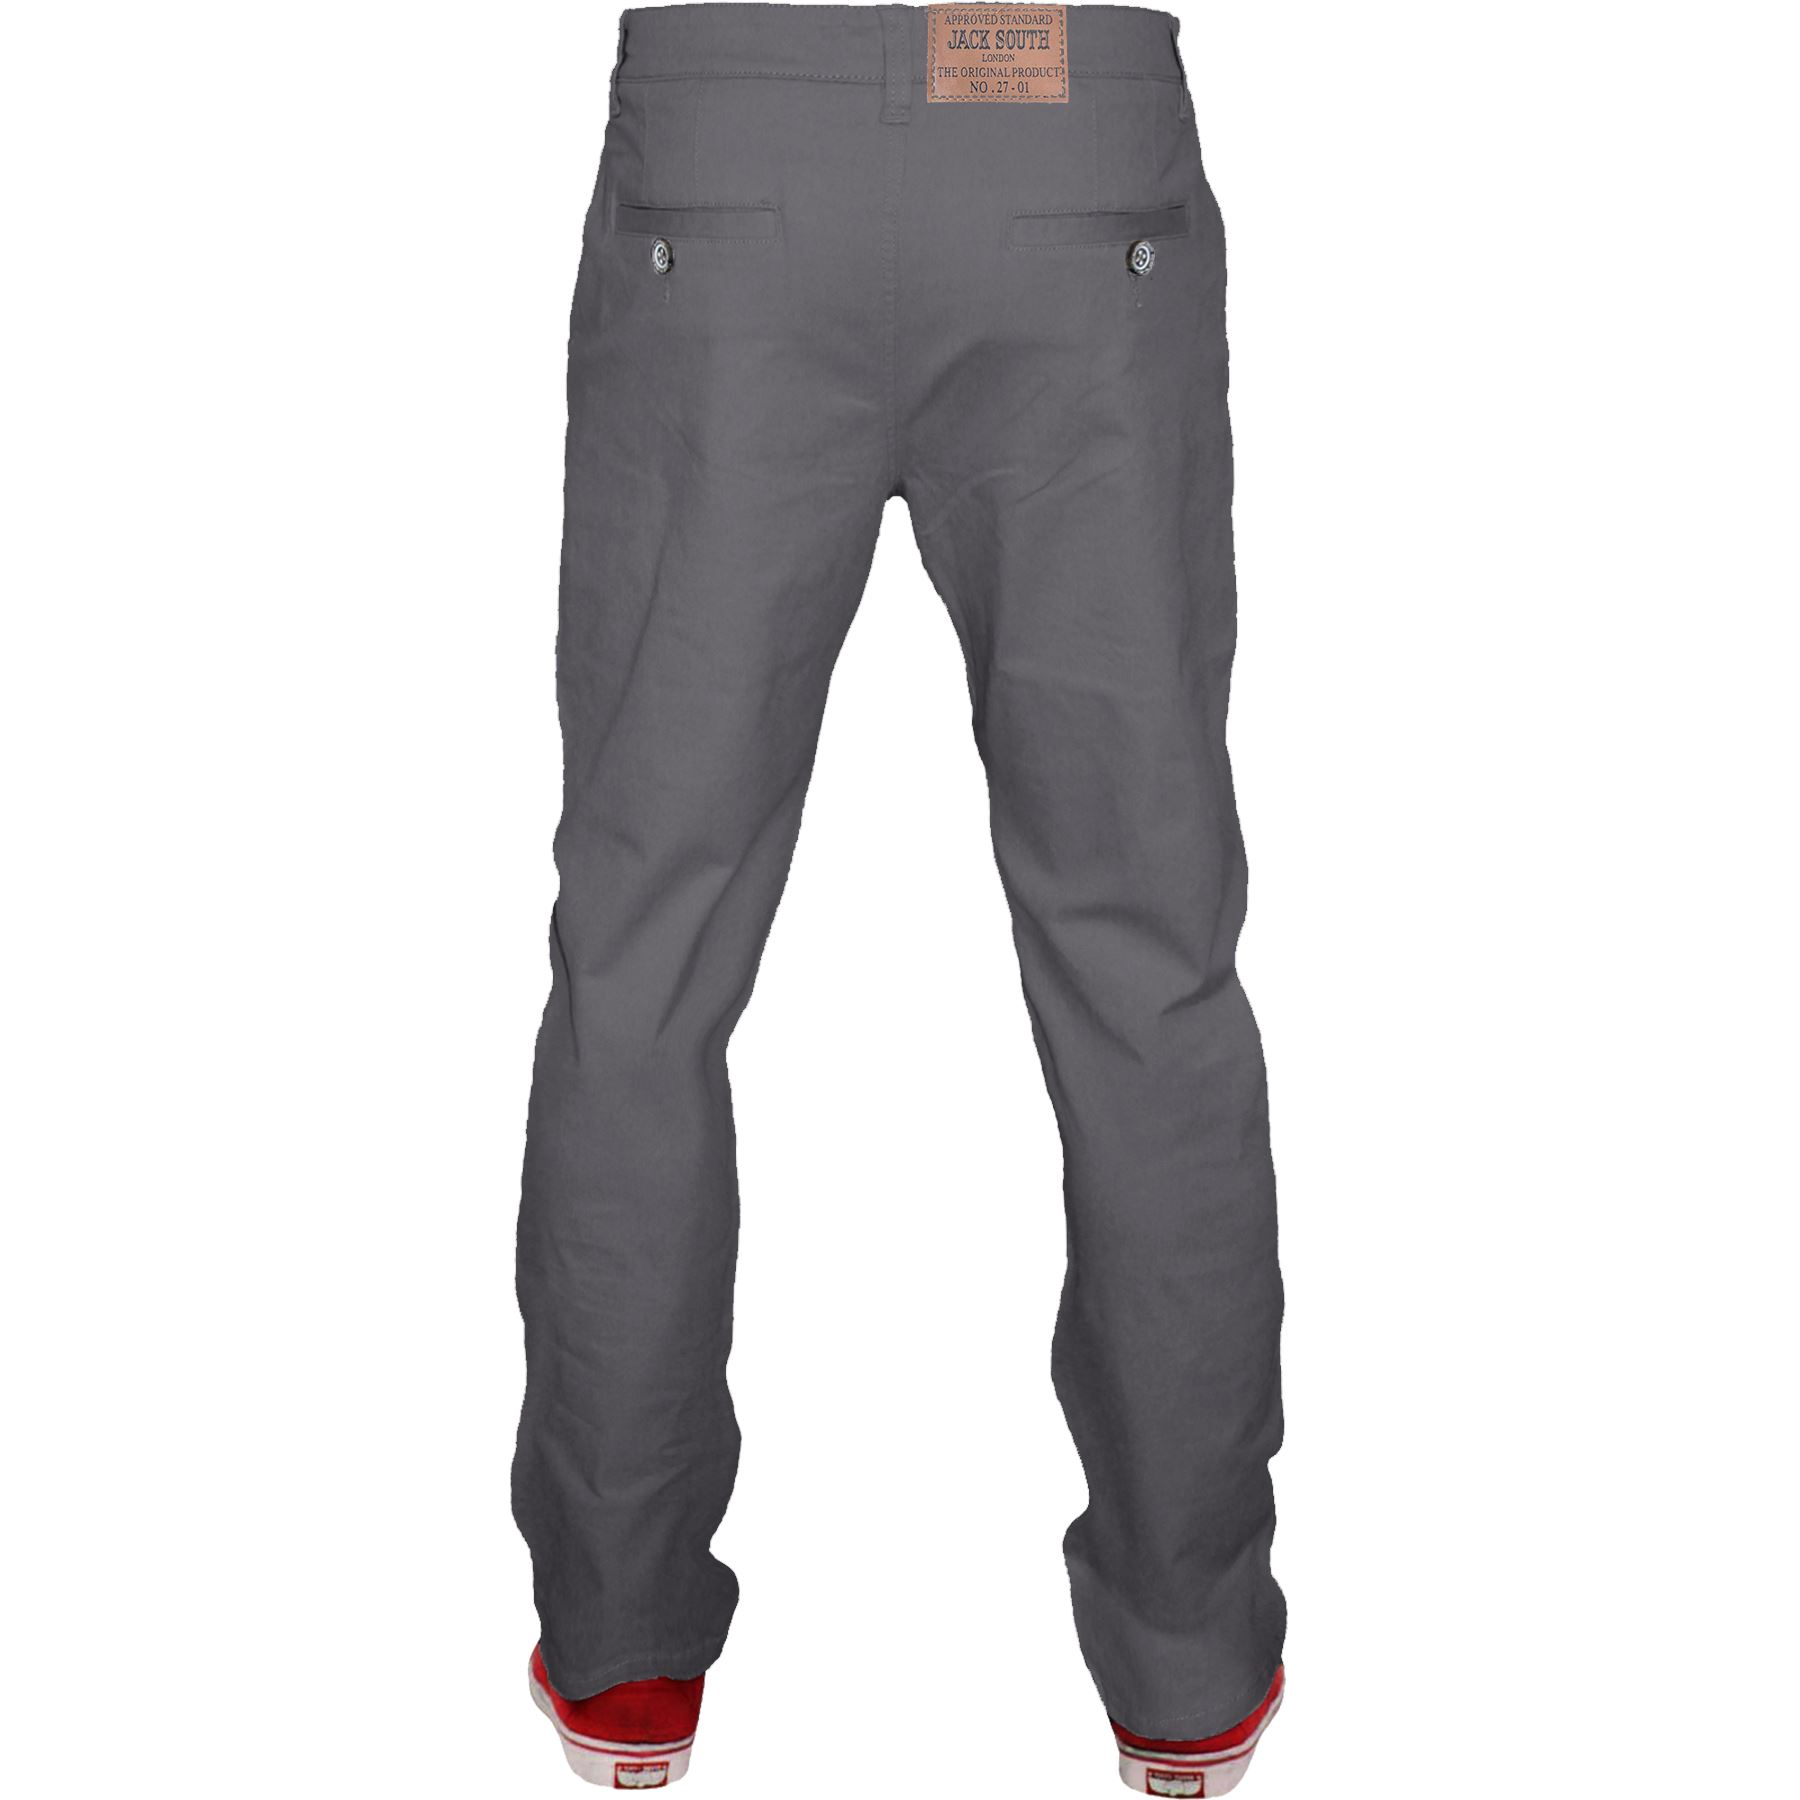 Mens-Chino-Classic-Regular-Fit-Trouser-Casual-Stretch-Spandex-Pants-Size-32-40 thumbnail 10